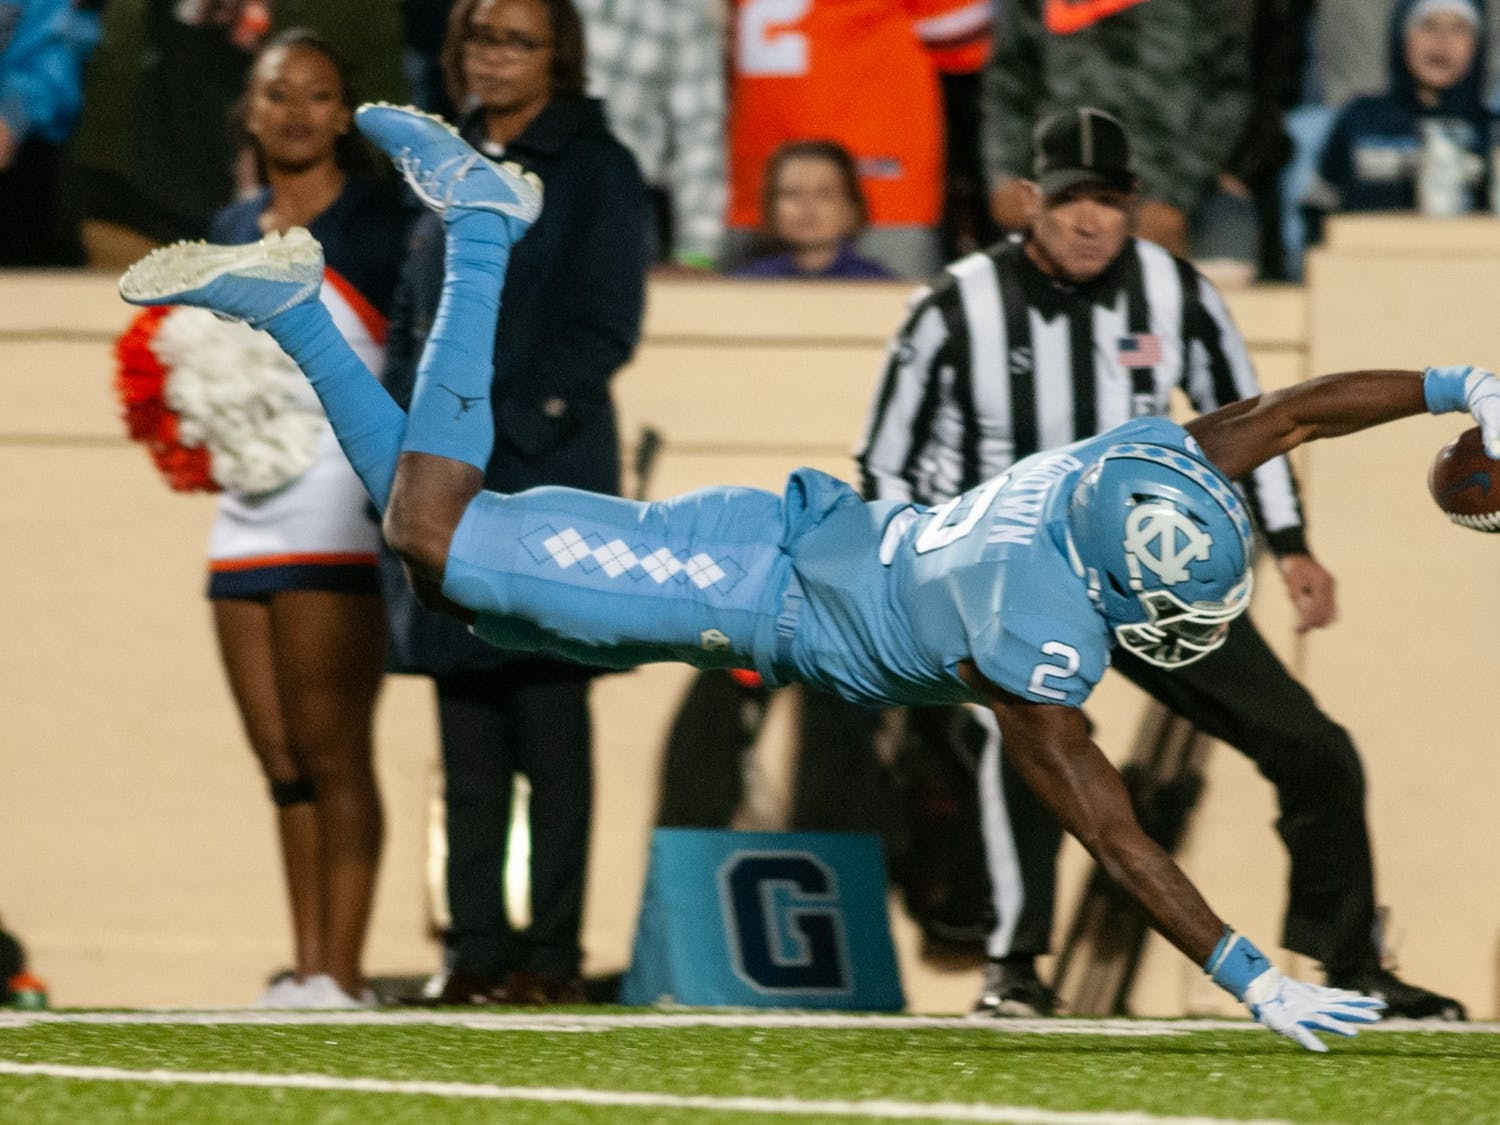 Wide receiver Dyami Brown (2) scores a touchdown during the game against Virginia on Saturday, Nov. 2, 2019.